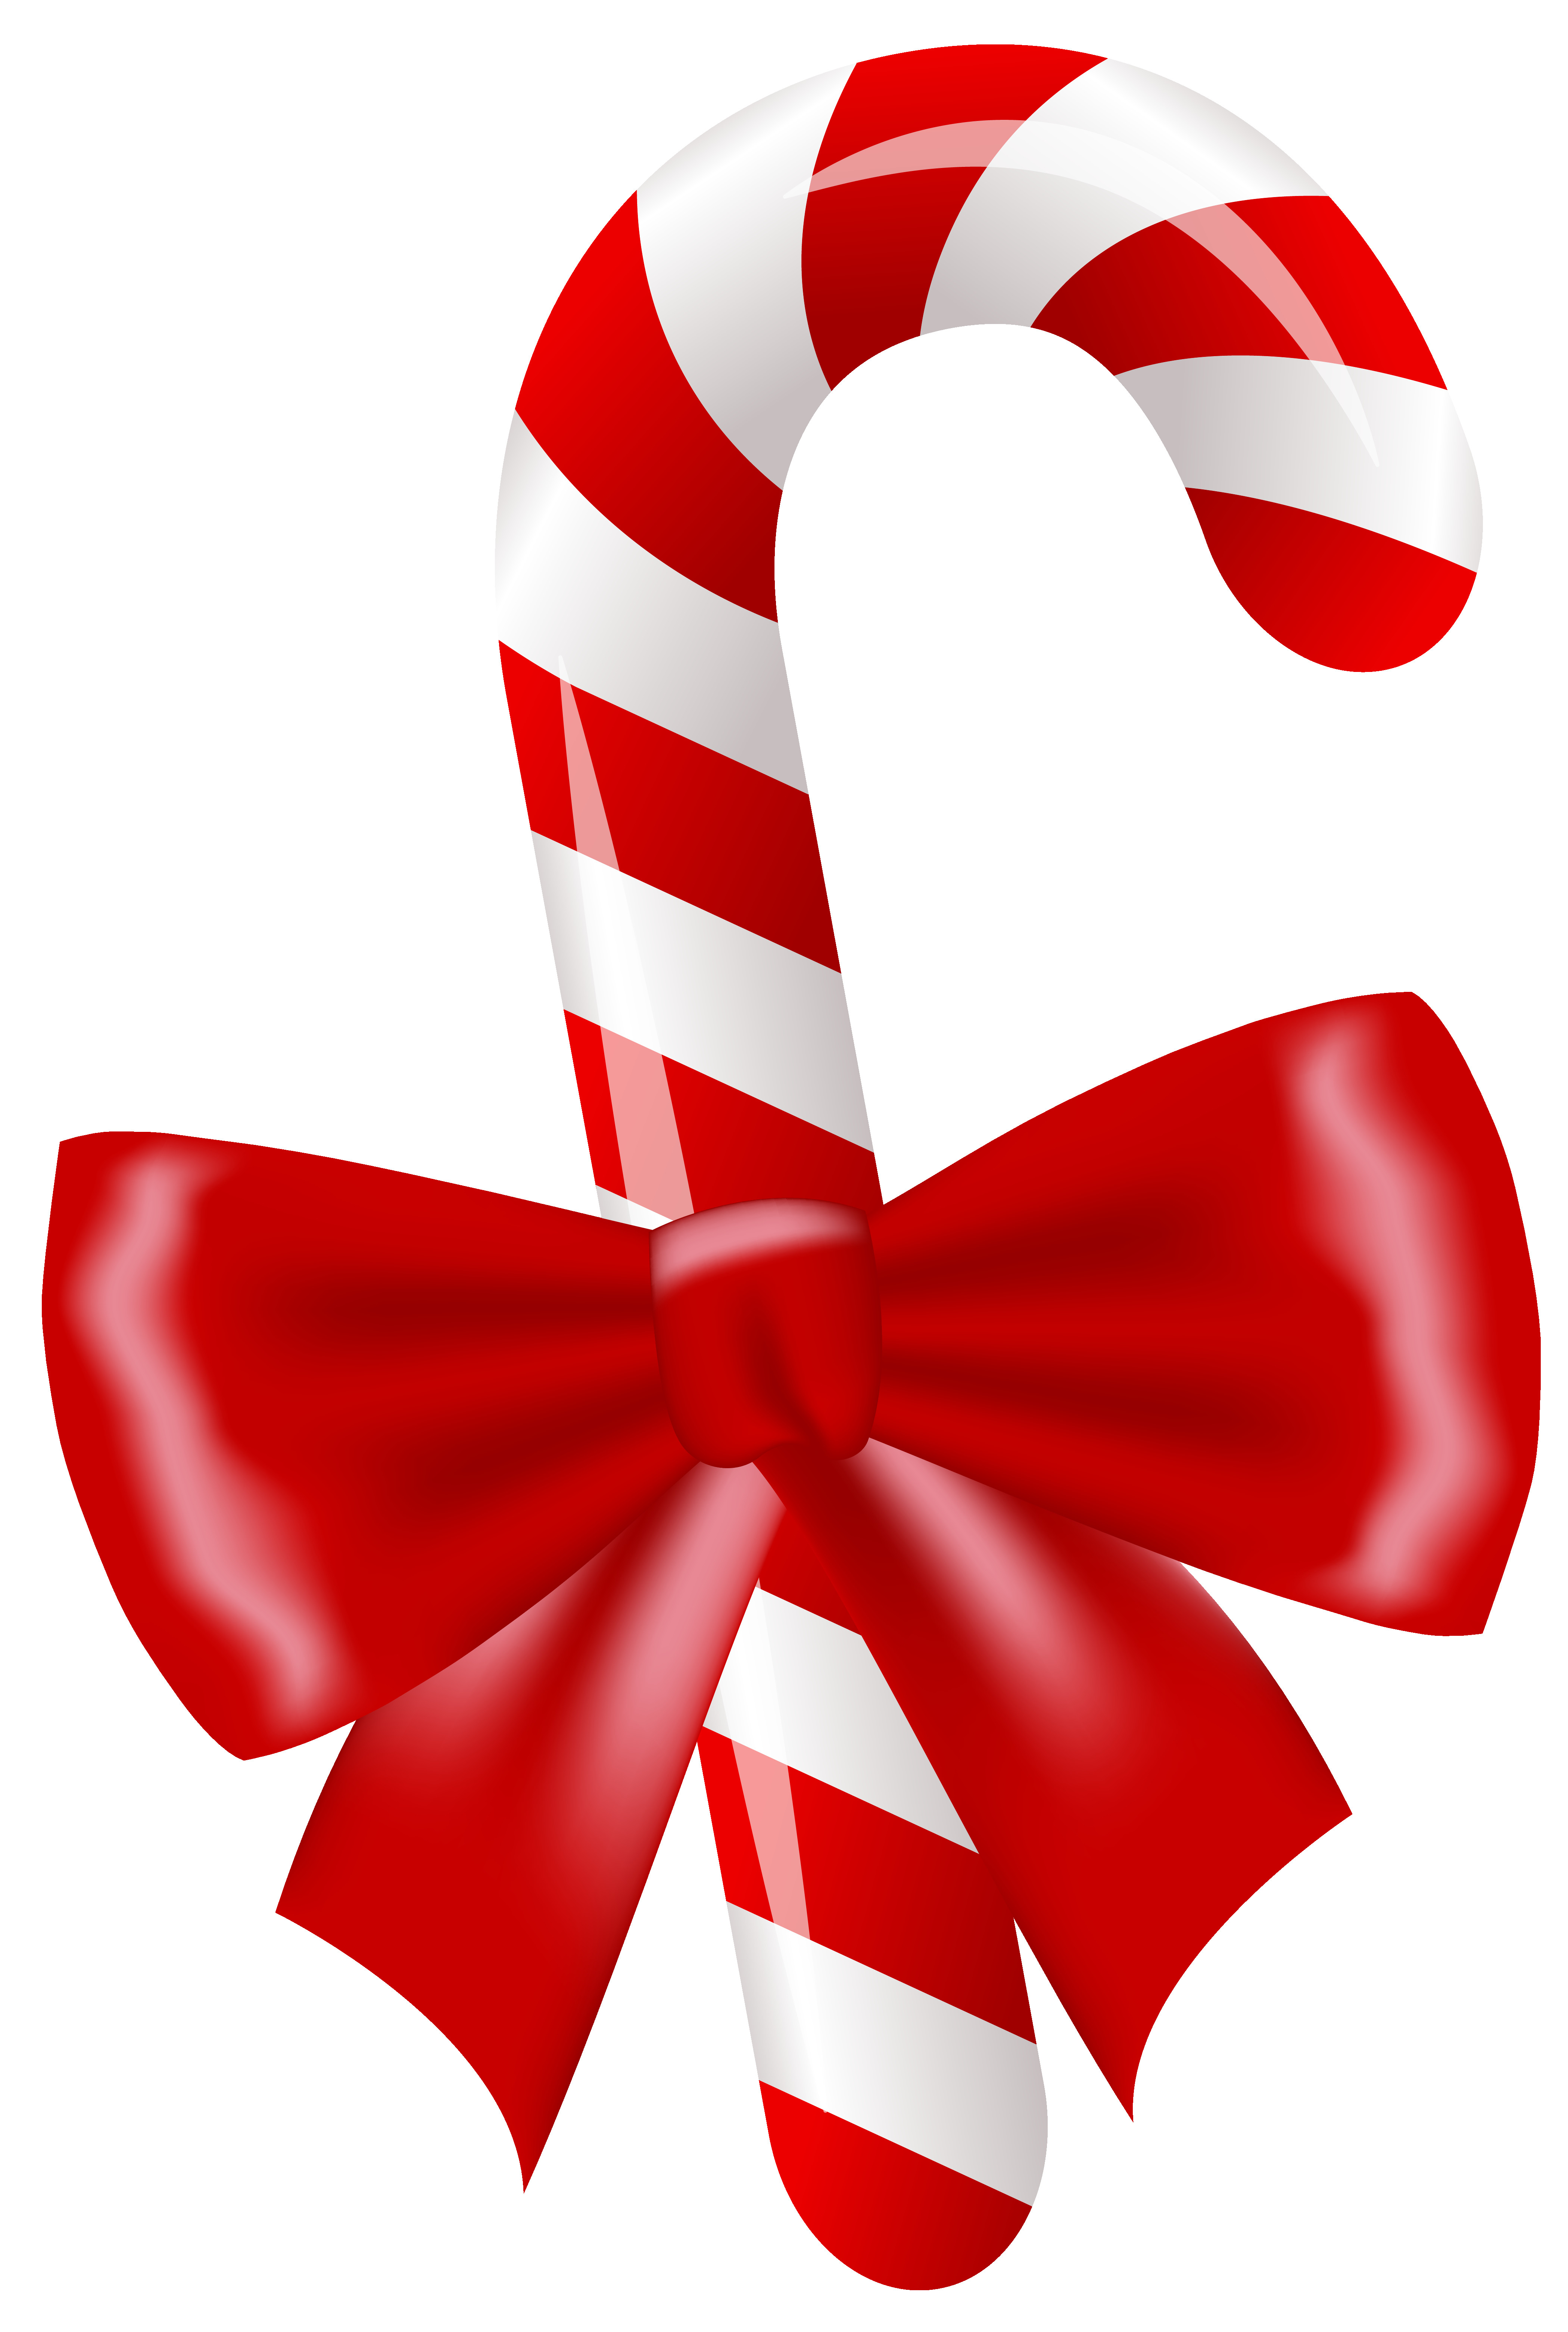 Christmas Candy Cane  Candy Cane clipart christmas present Pencil and in color